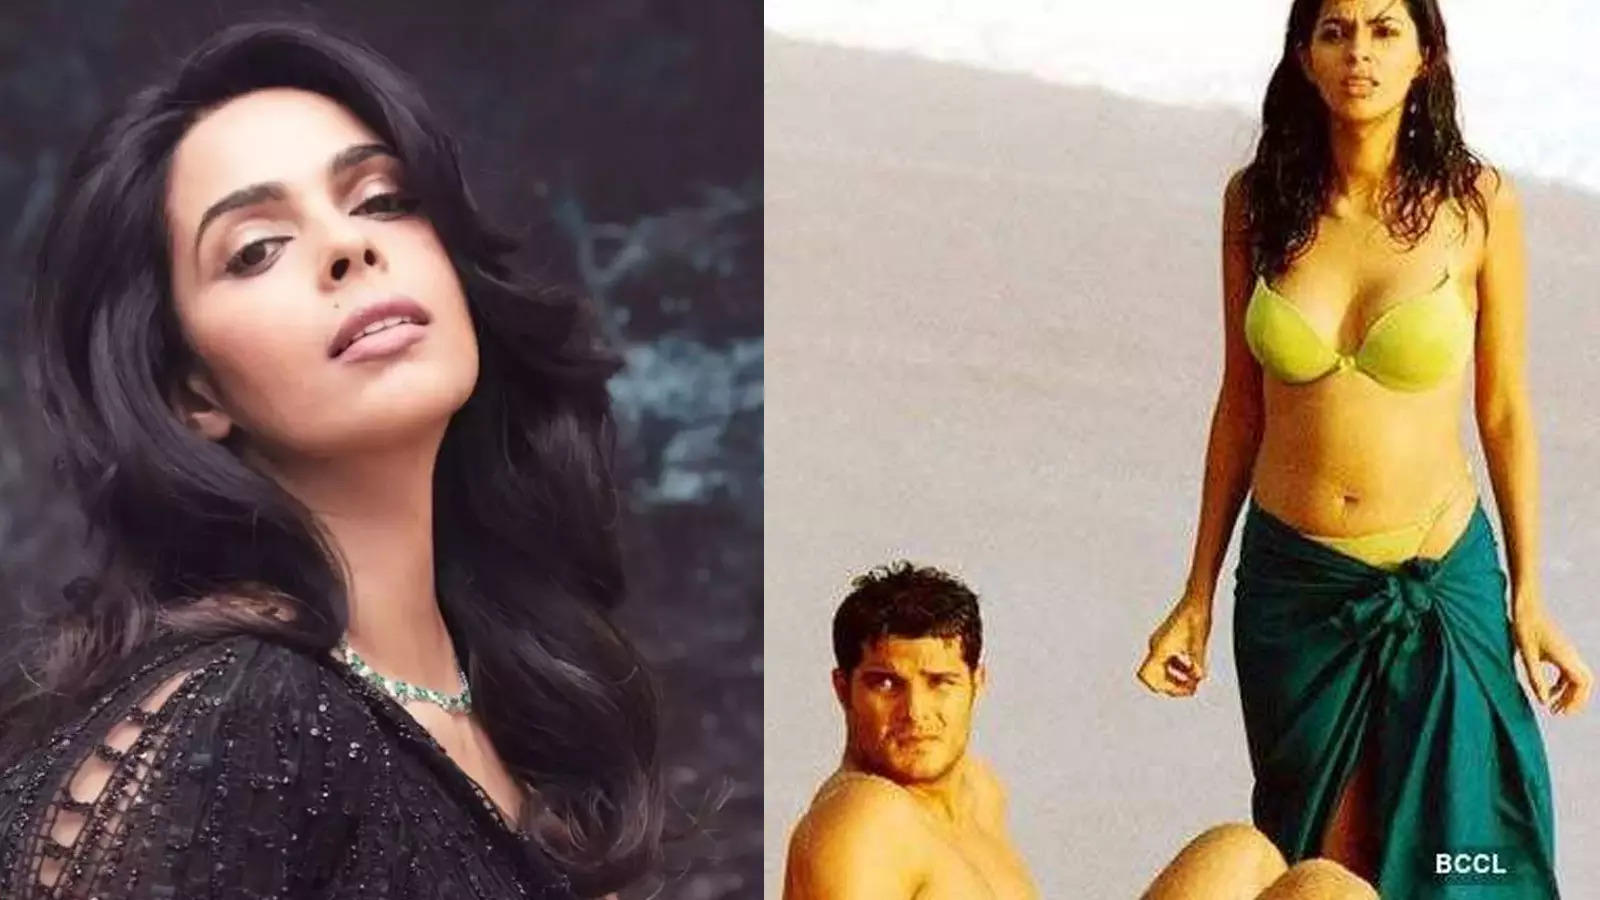 mallika-sherawat-opens-up-on-receiving-flak-from-moral-police-for-her-bold-scenes-women-are-always-targeted